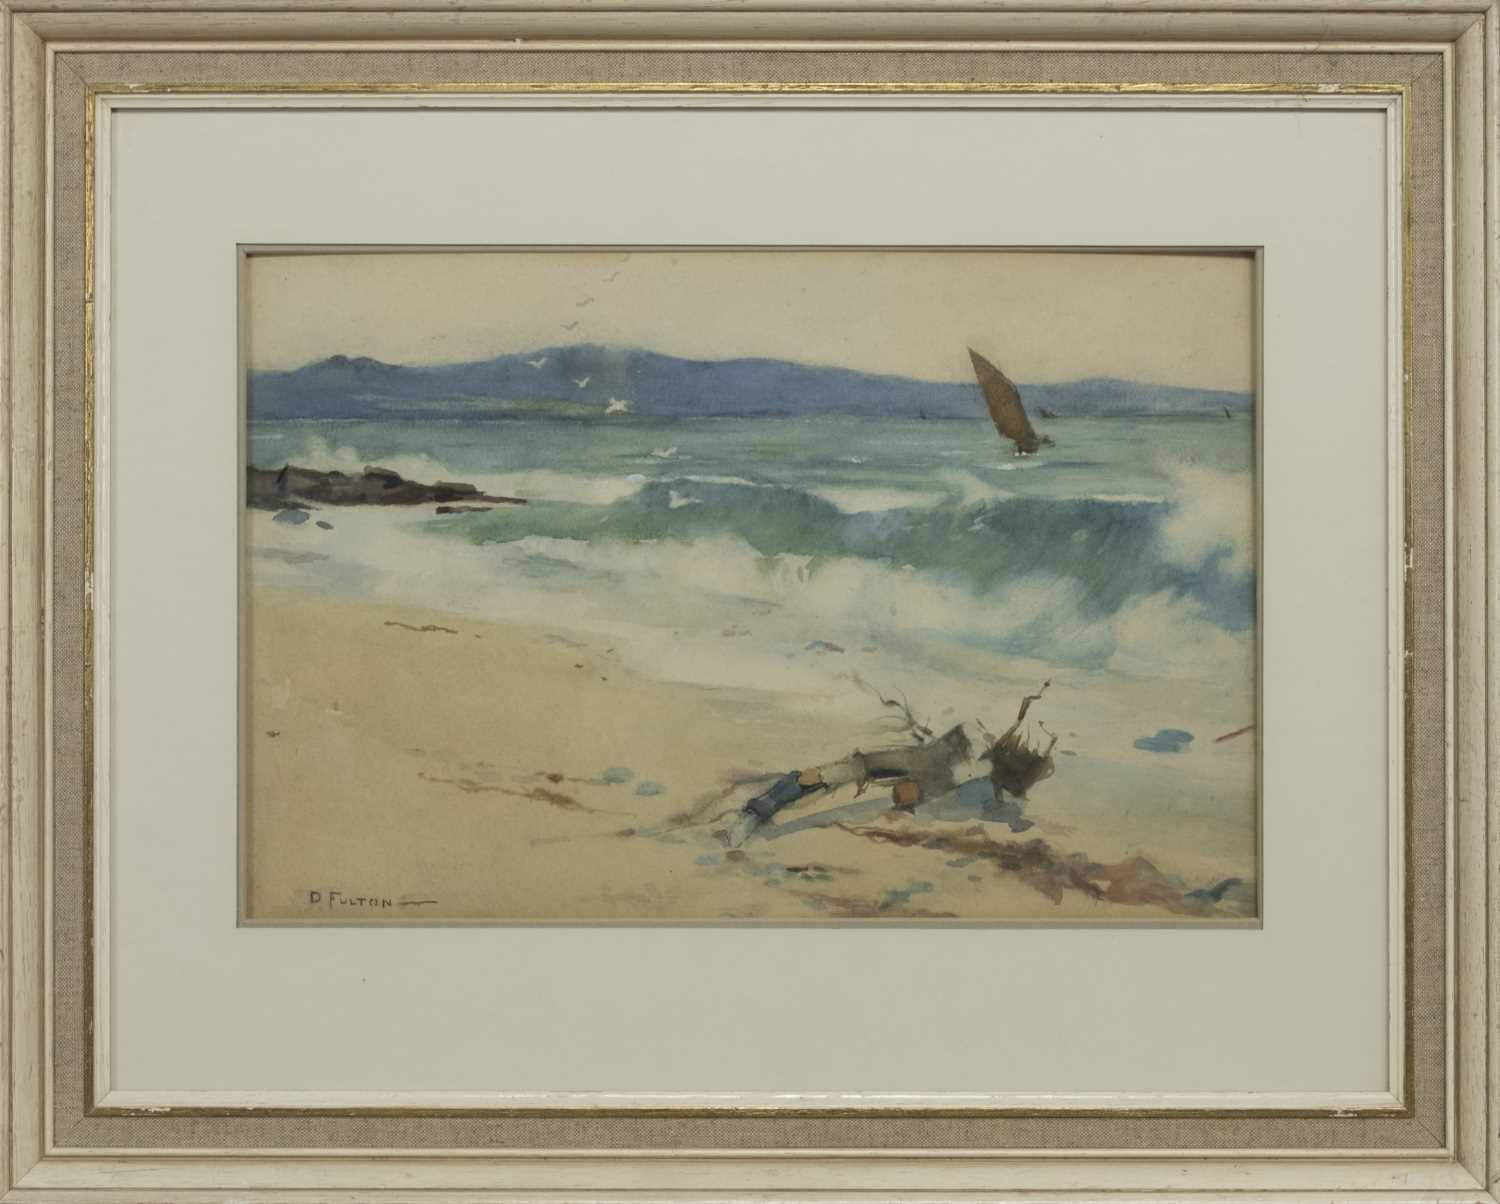 Lot 53 - THE MORNING AFTER A STORM, A WATERCOLOUR BY DAVID FULTON